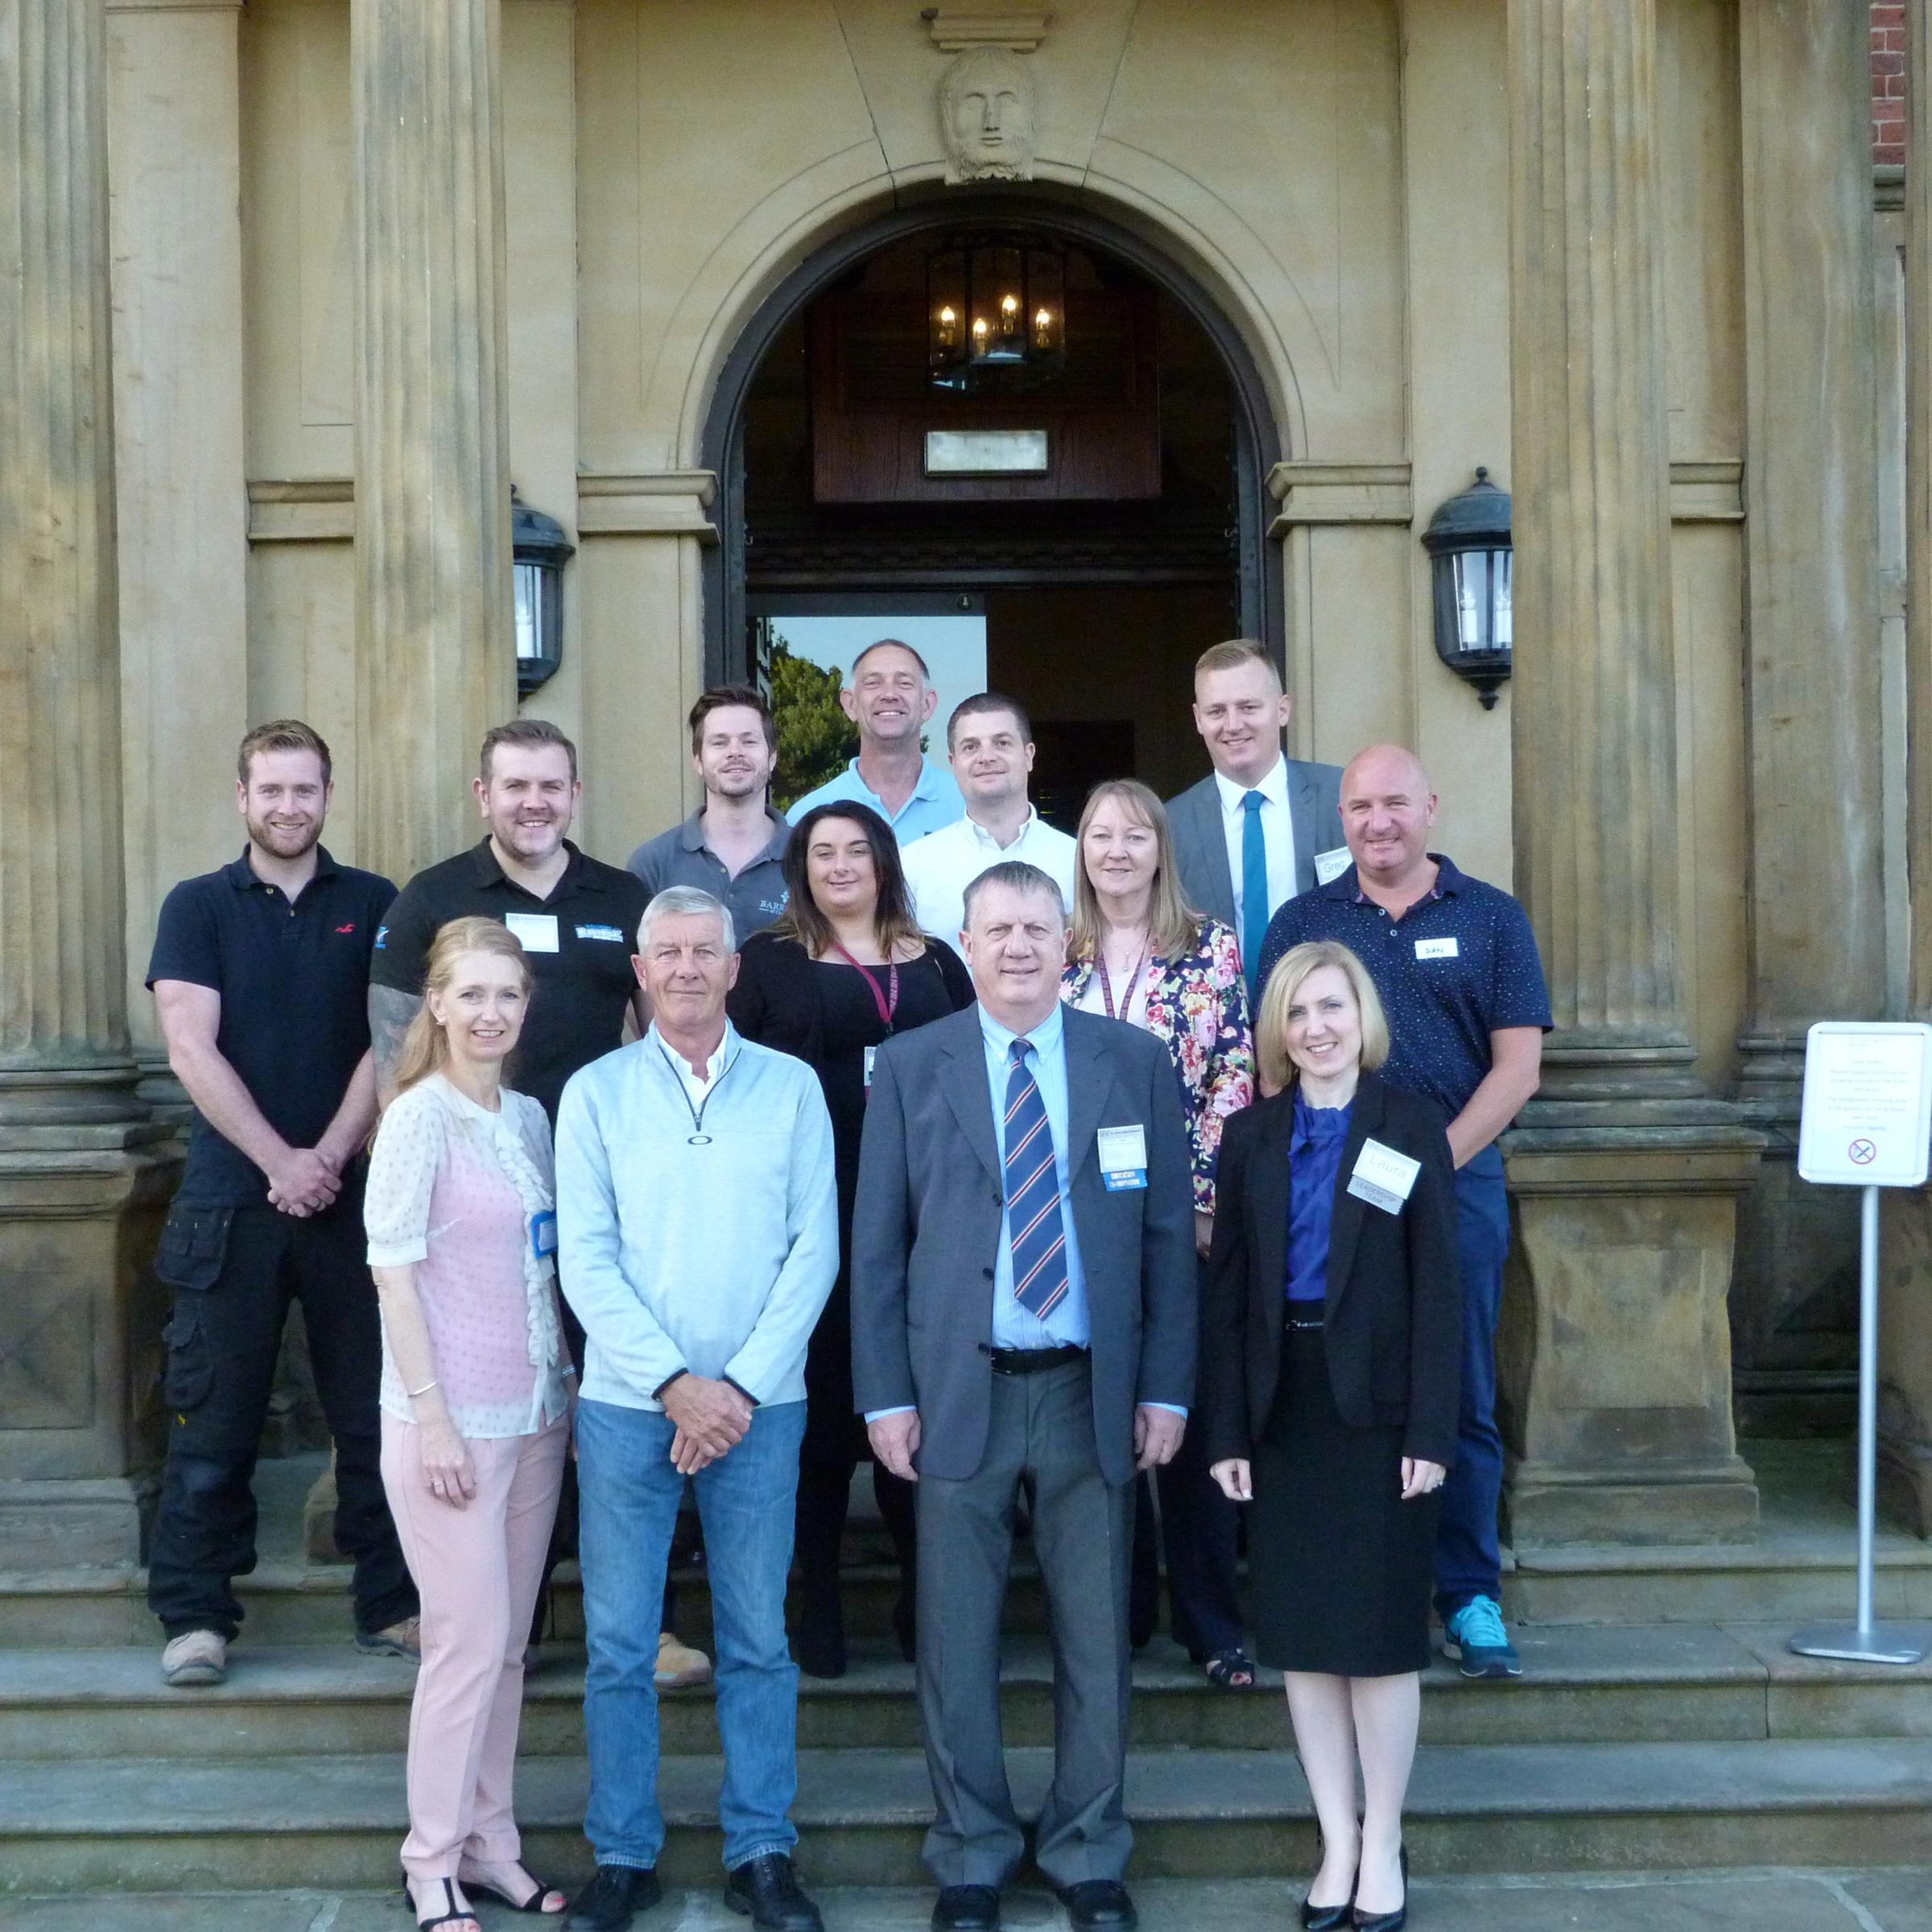 A business networking group has officially launched in Holmes Chapel